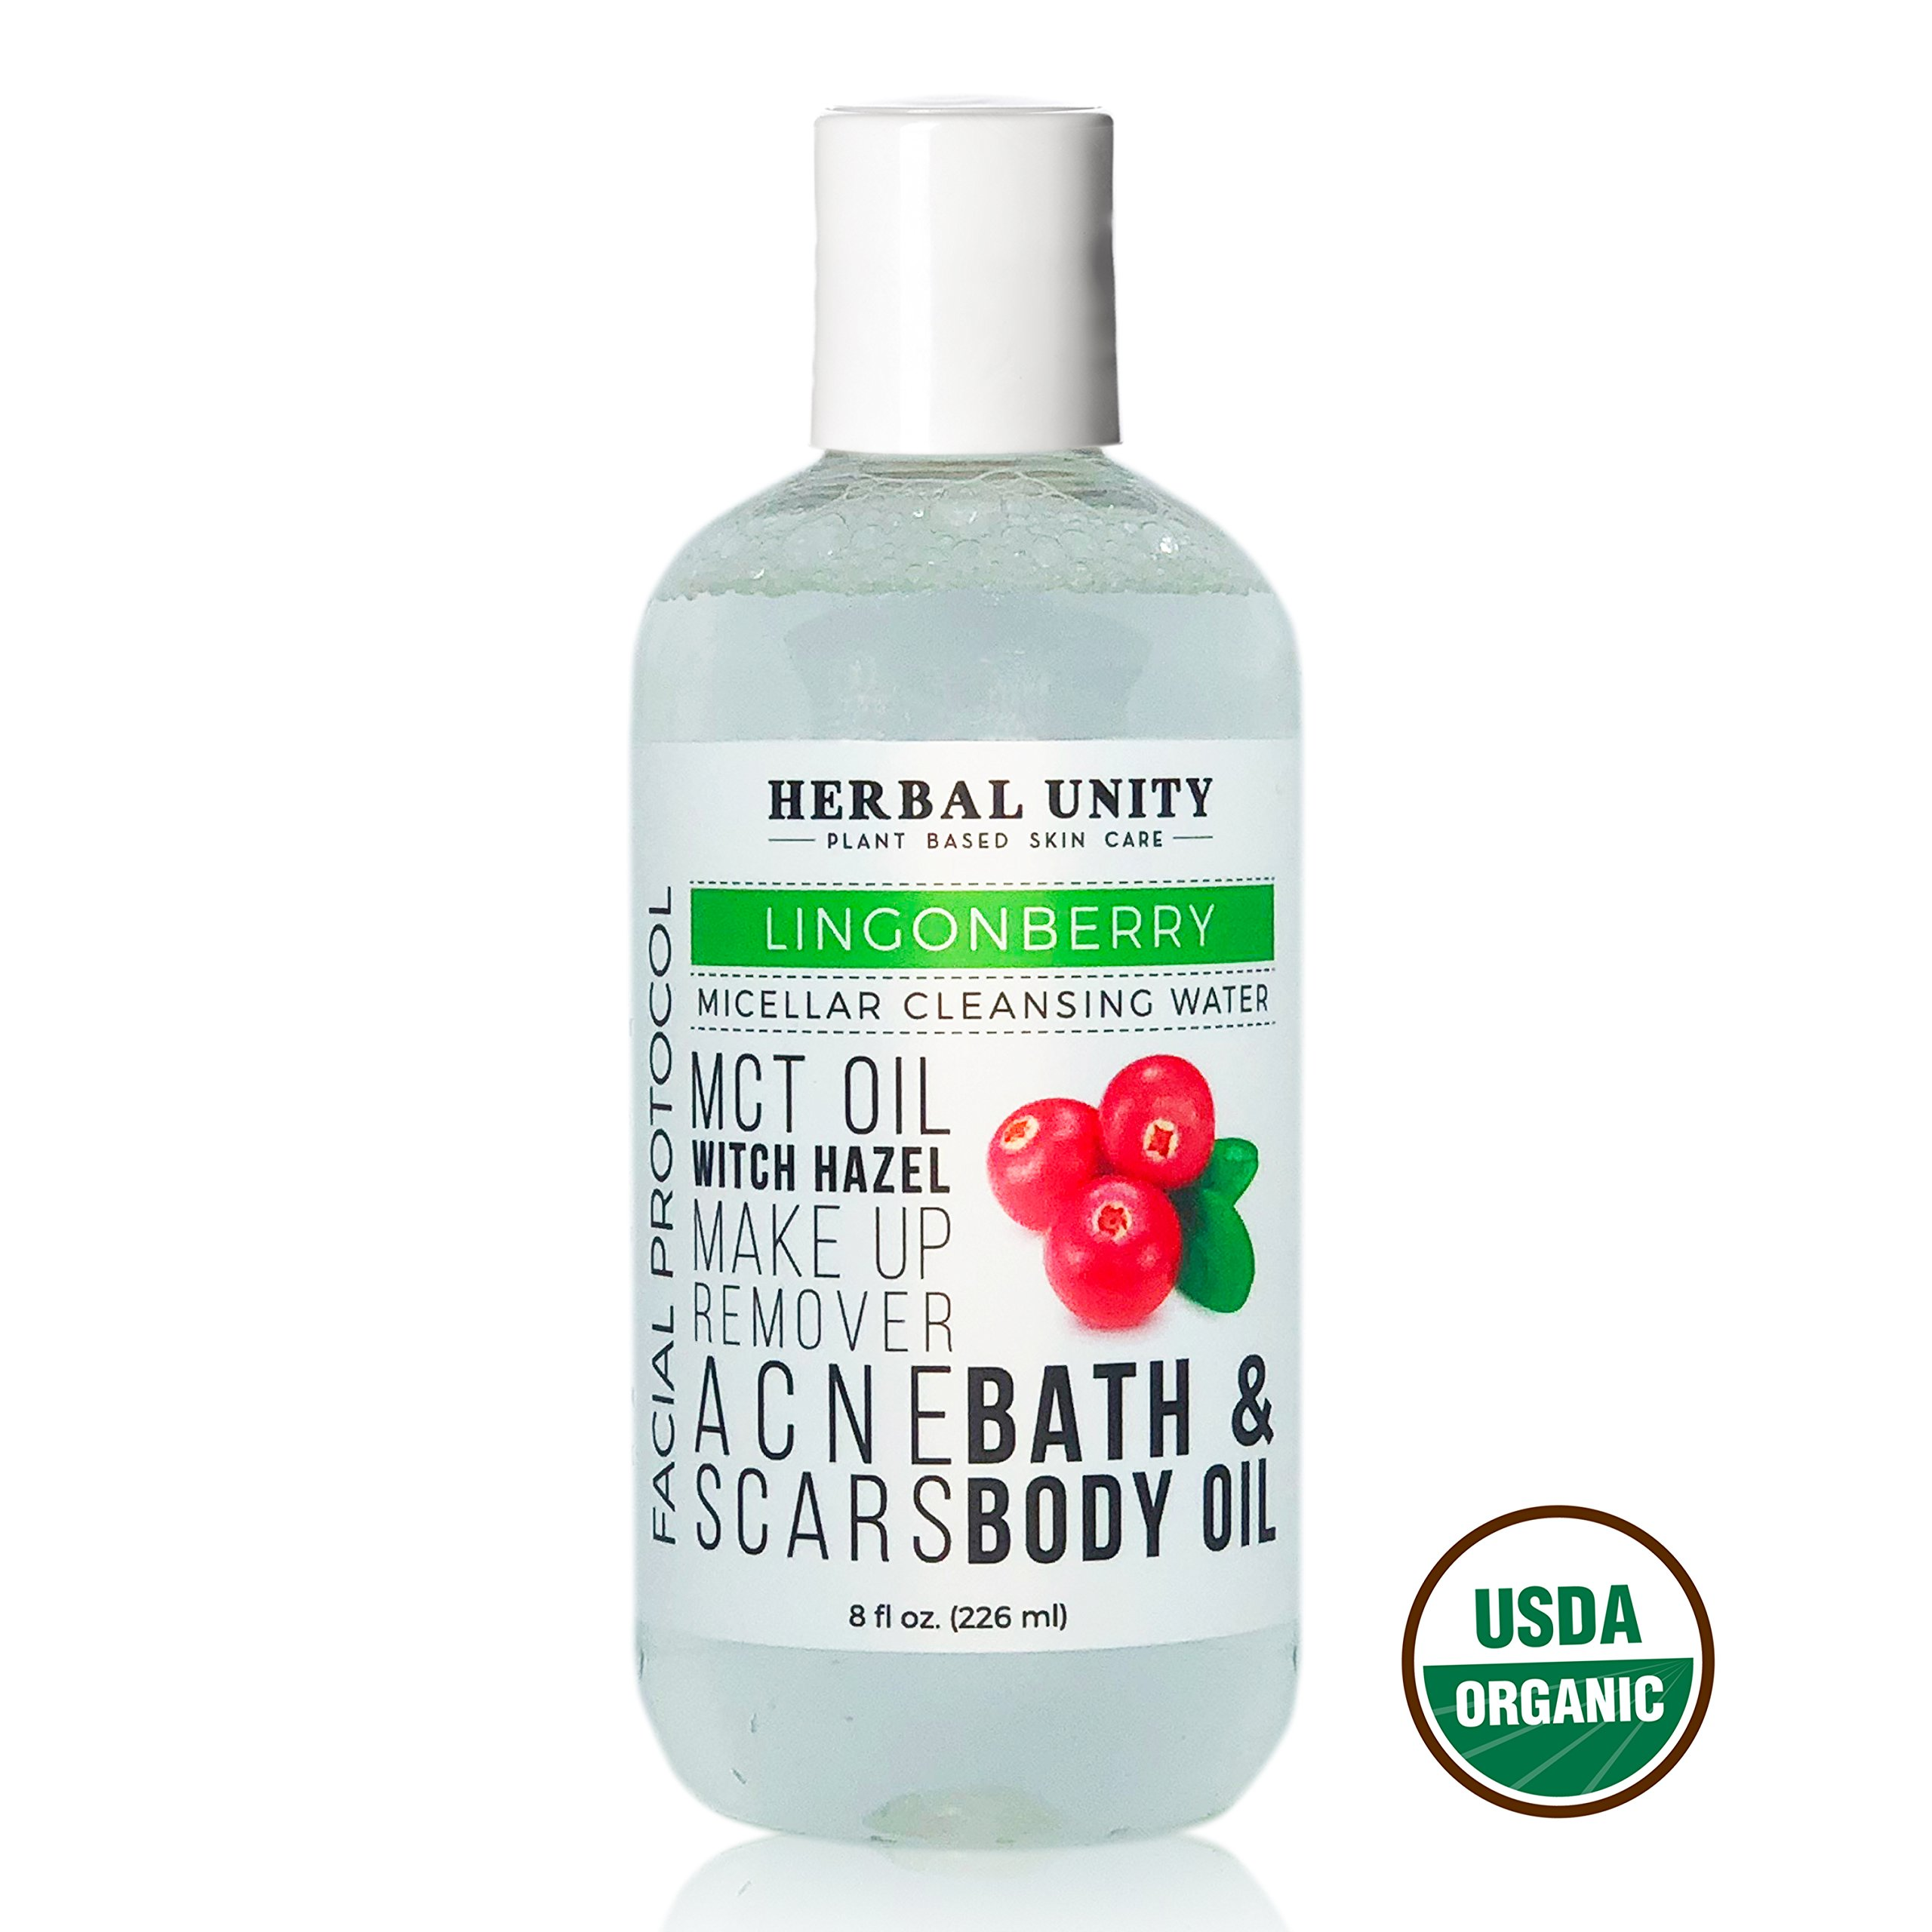 Micellar Cleansing Water - All Natural & Organic Lingonberry Extract - Deep Facial Cleanser Oil - 3-in-1 - Make up Remover & Brightening - Removes Dirt - No Rinse - Pore Purifying